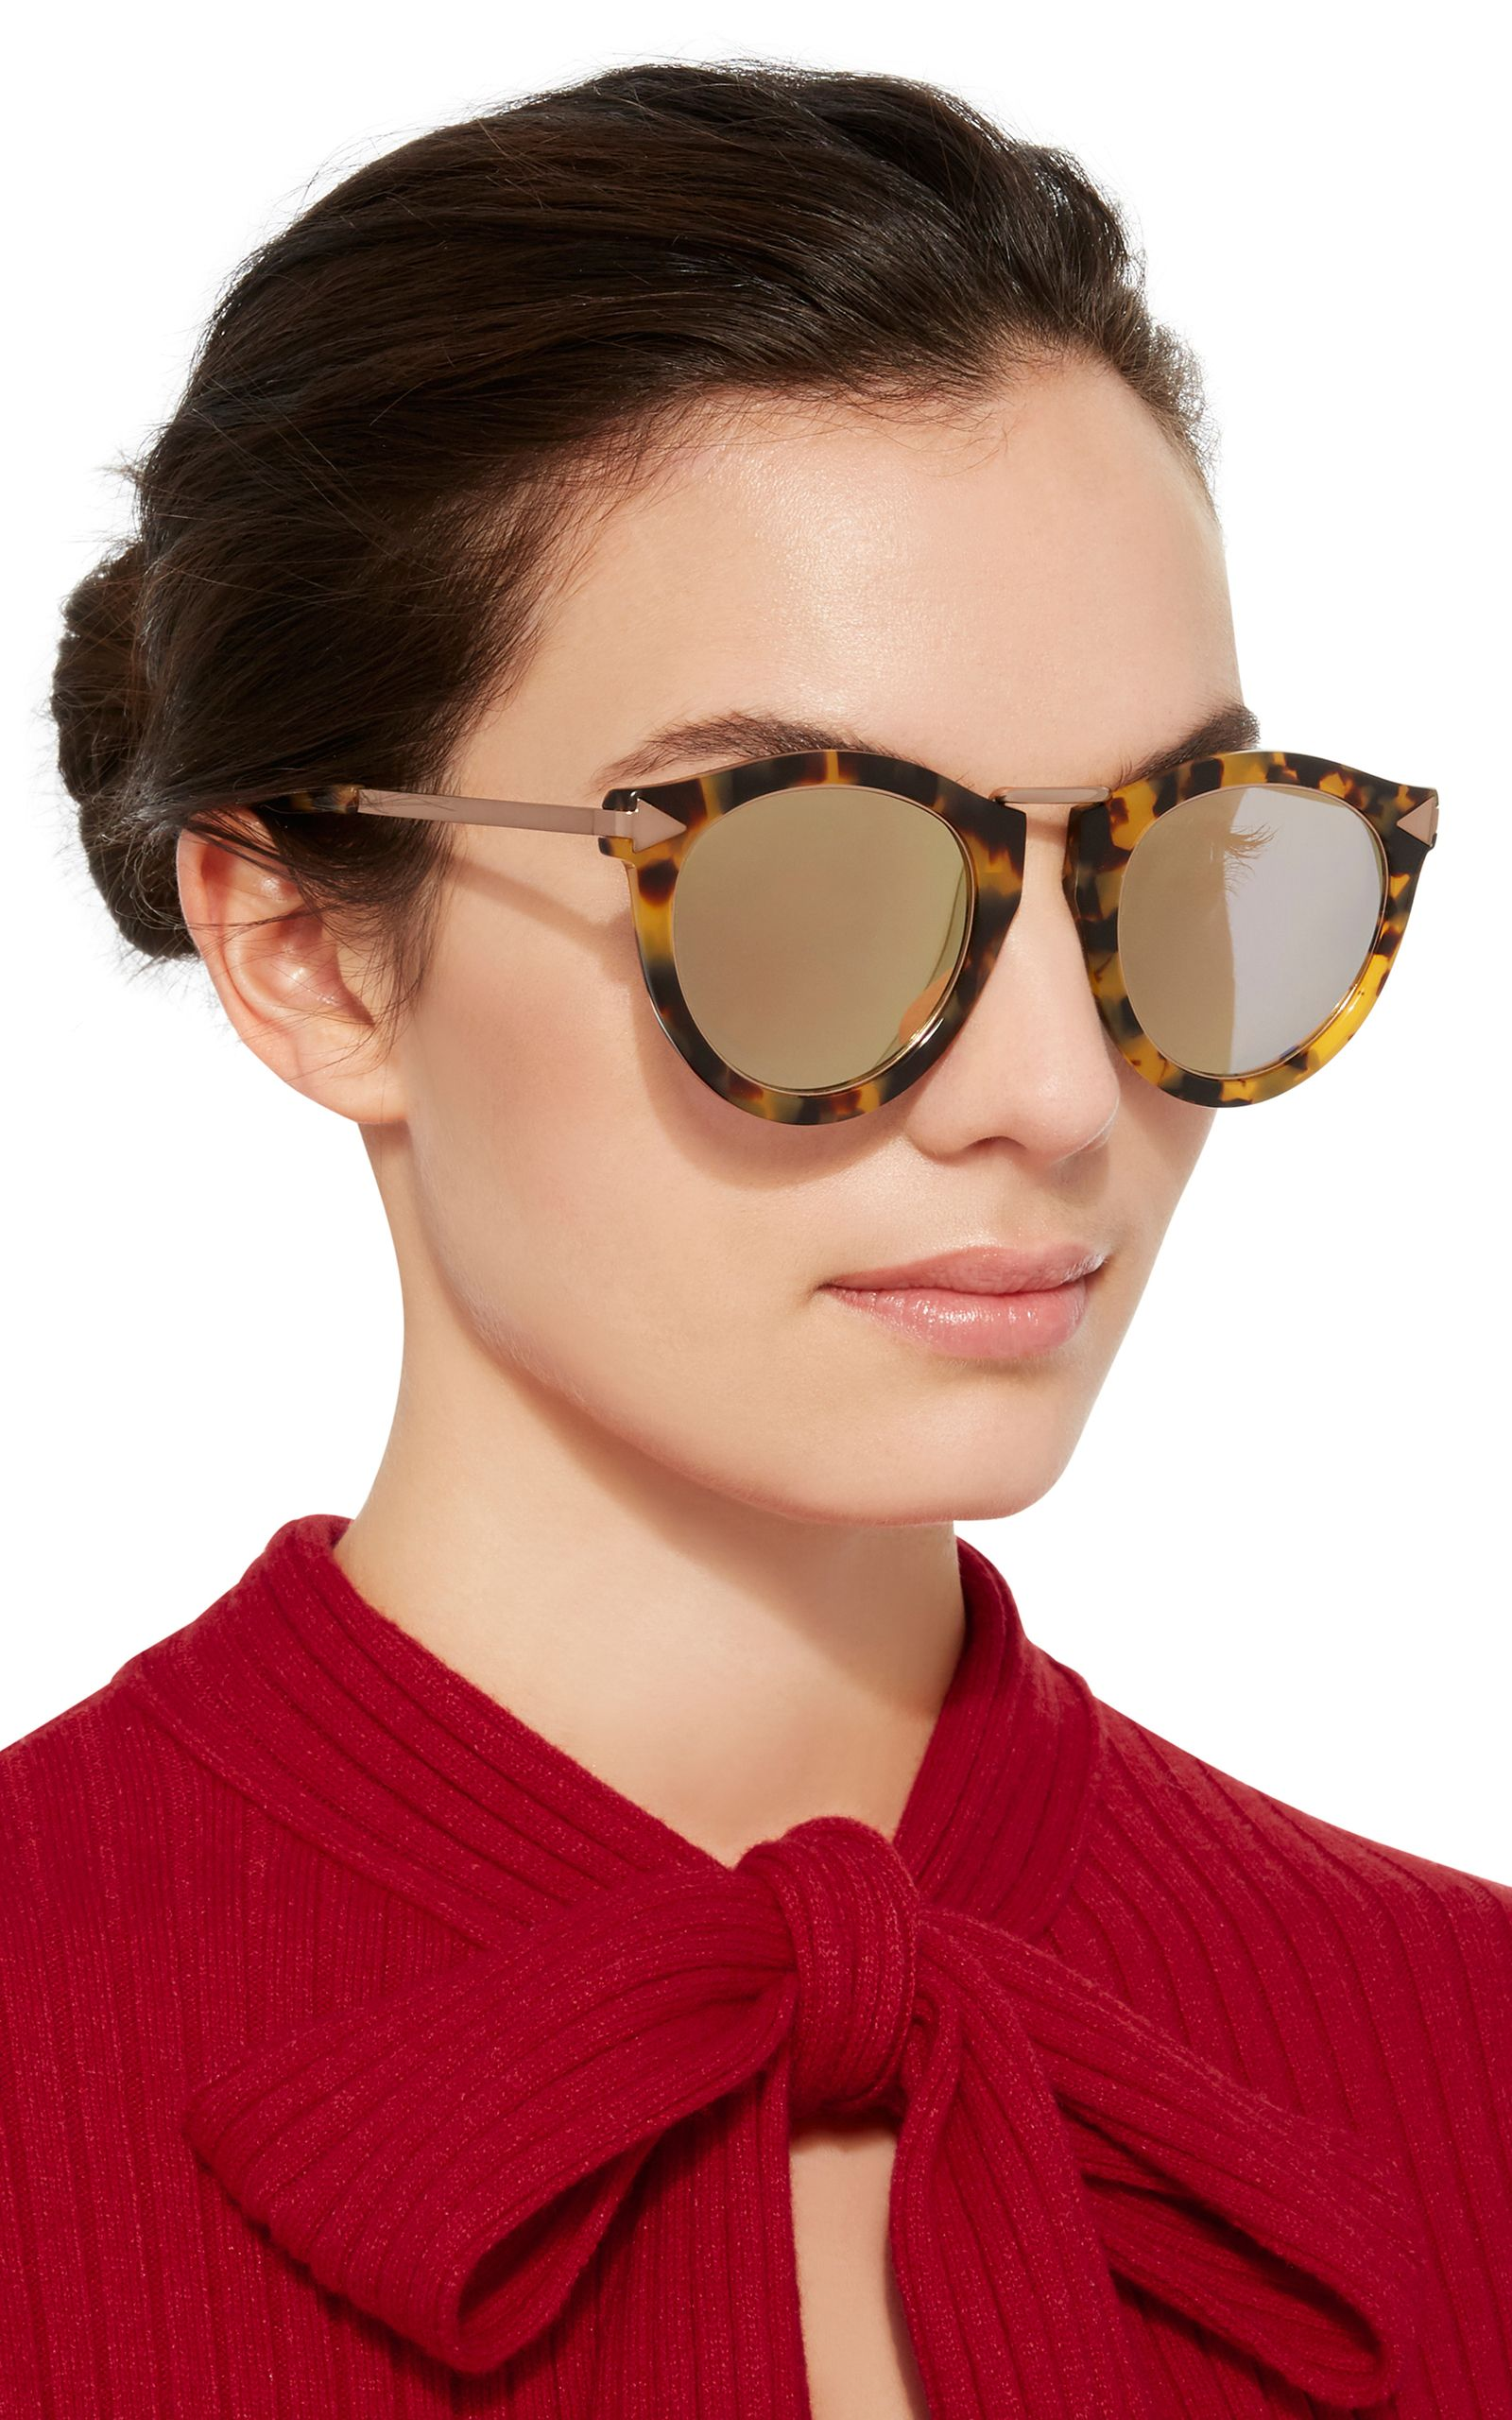 7123d7e8cd414 Harvest Rose Gold-Tone Metal and Tortoiseshell Acetate Sunglasses by KAREN  WALKER Now Available on Moda Operandi